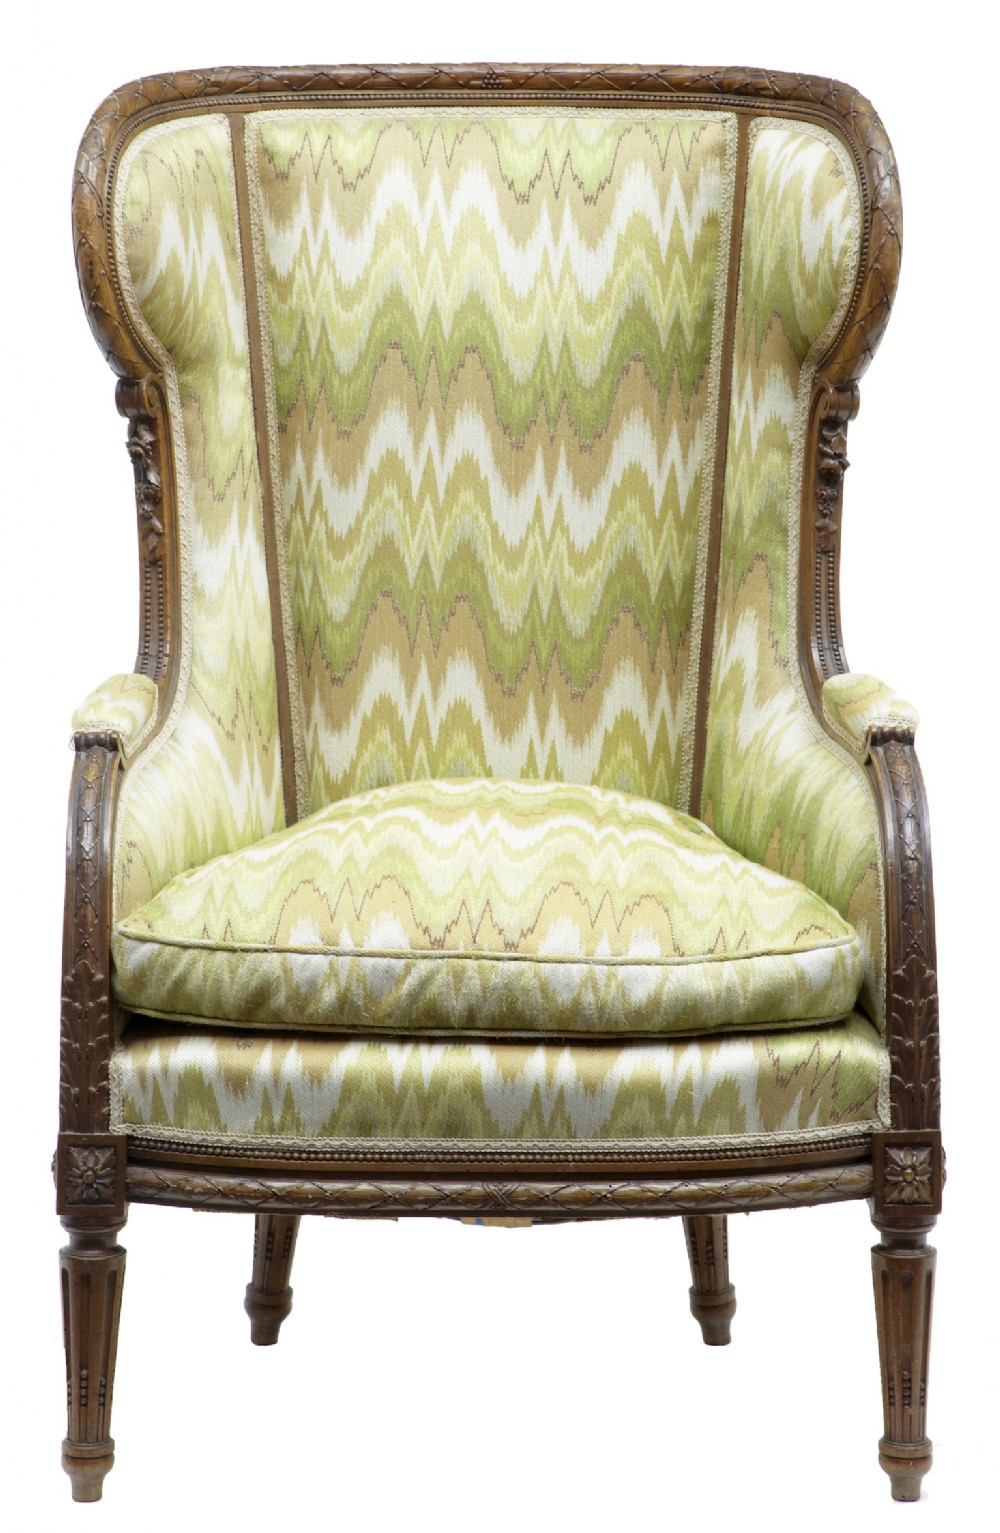 19th century french carved walnut wing back armchair